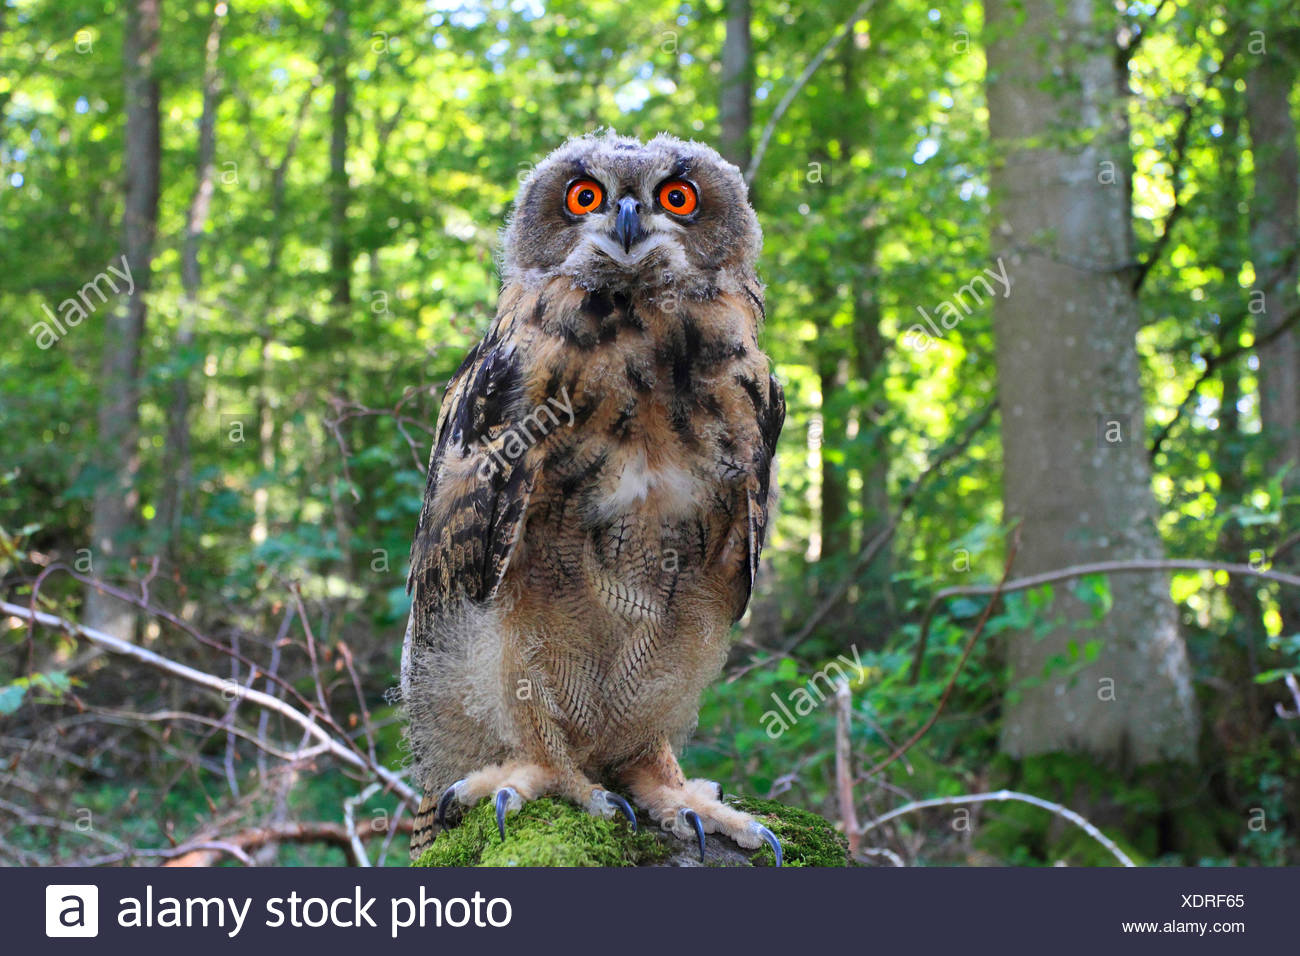 northern eagle owl (Bubo bubo), sits on a mossy stone, Germany - Stock Image